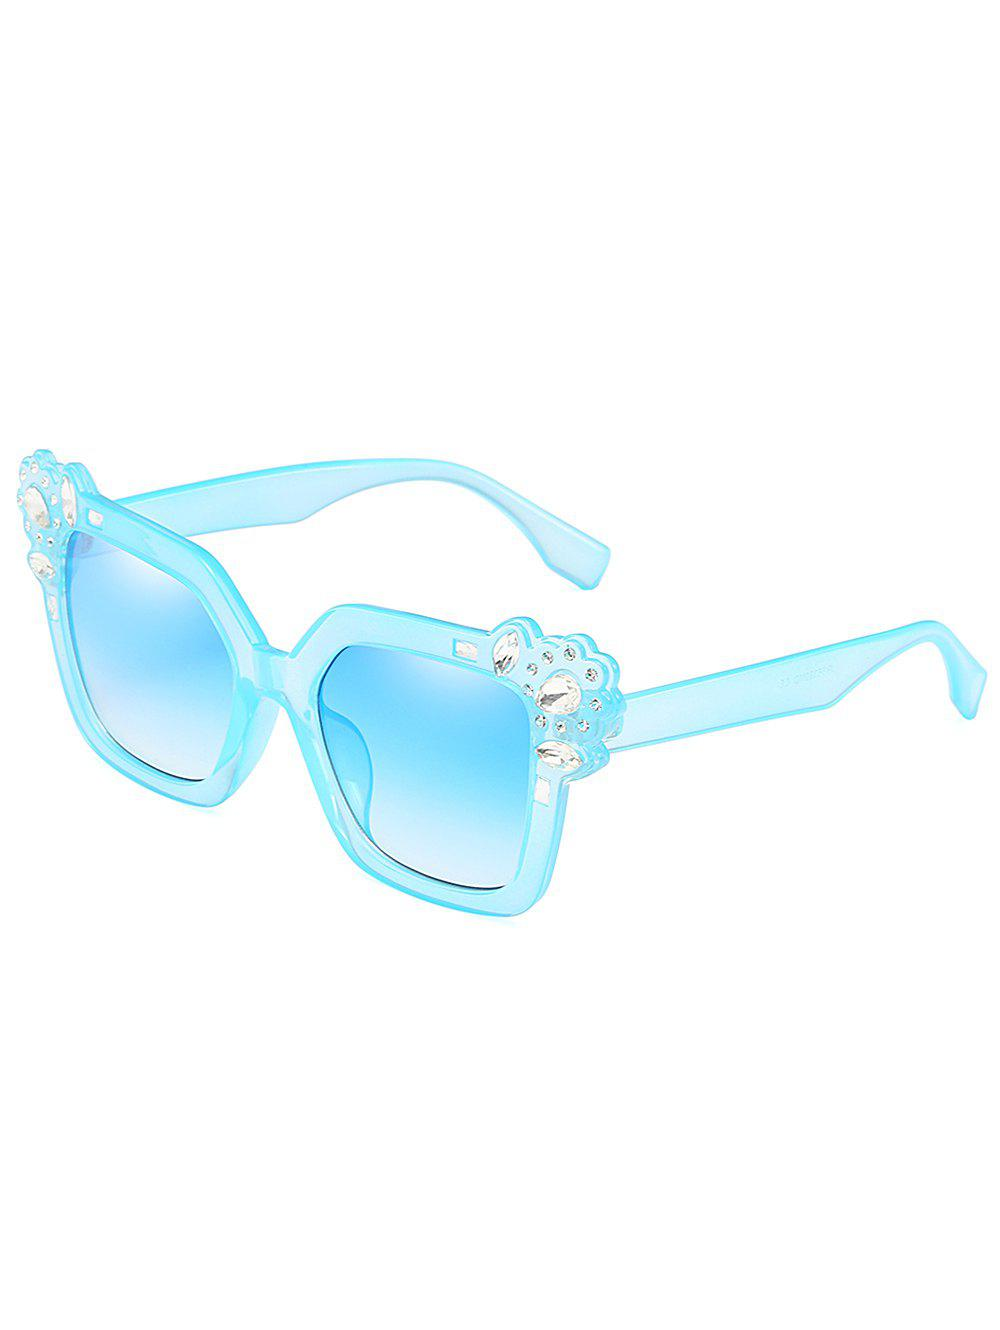 Rhinestone Inlaid Embellished Oversized Sunglasses - DAY SKY BLUE